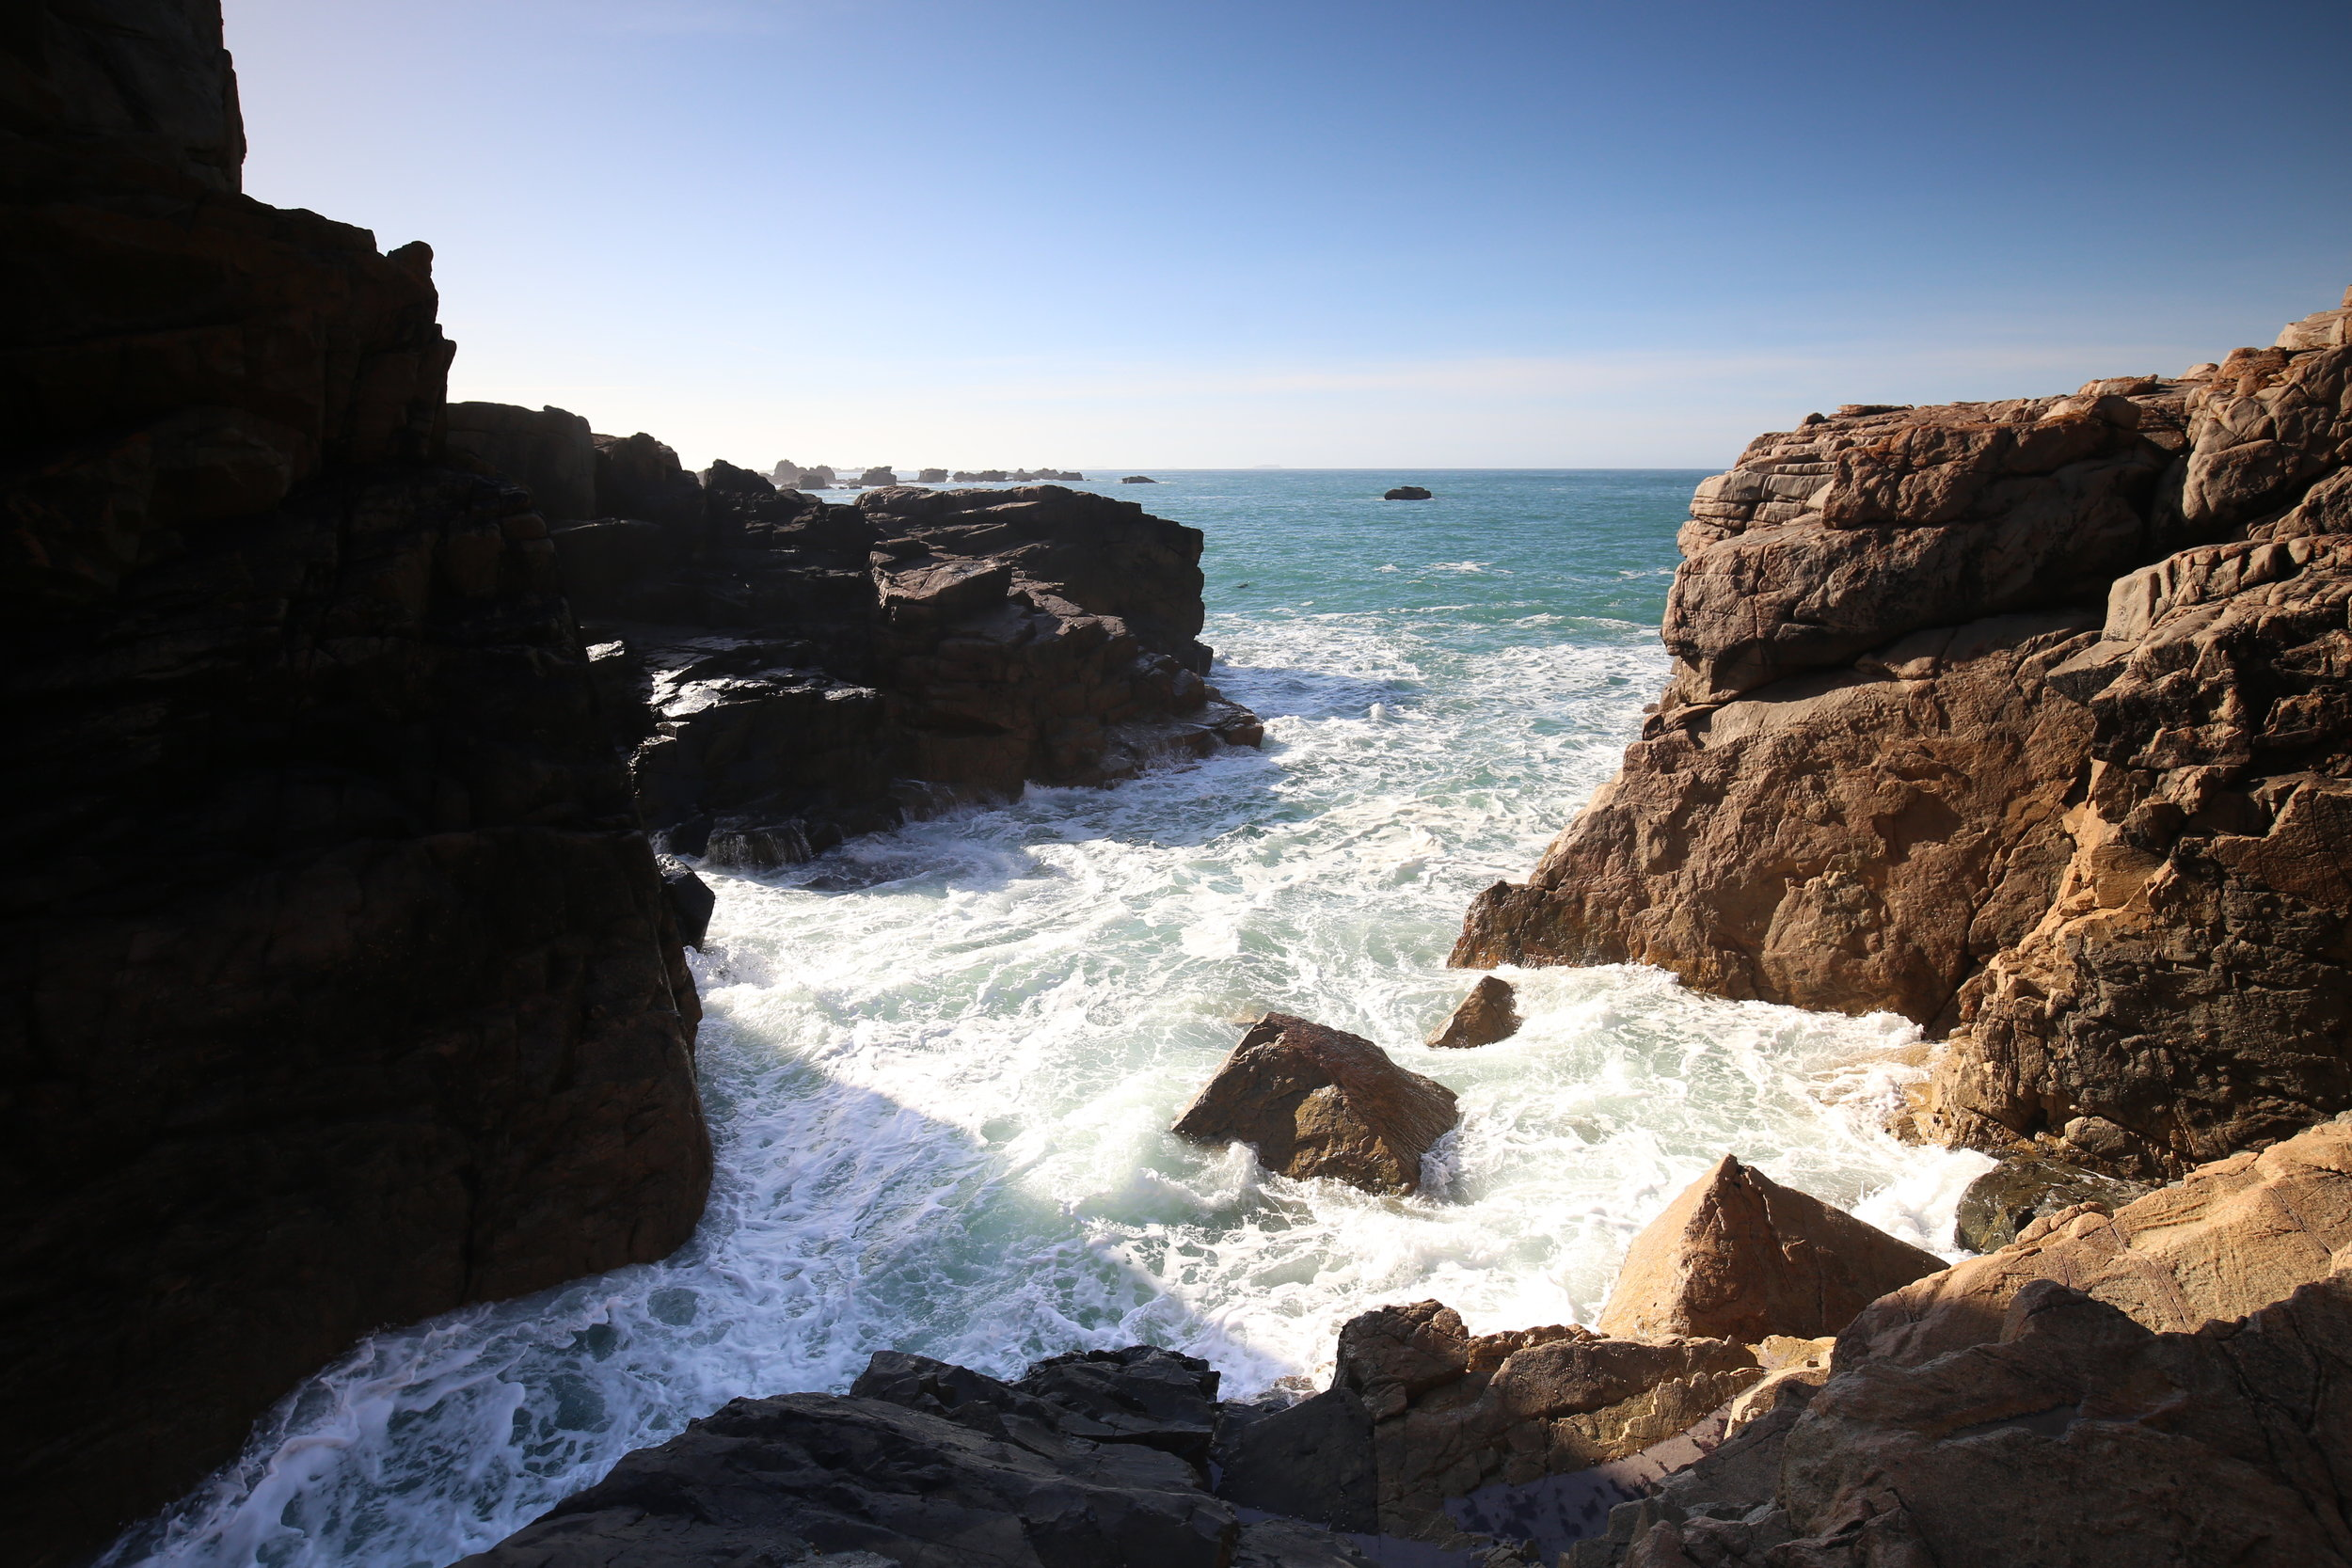 Sea spray in an alcove of rocks on the Rose Coast.